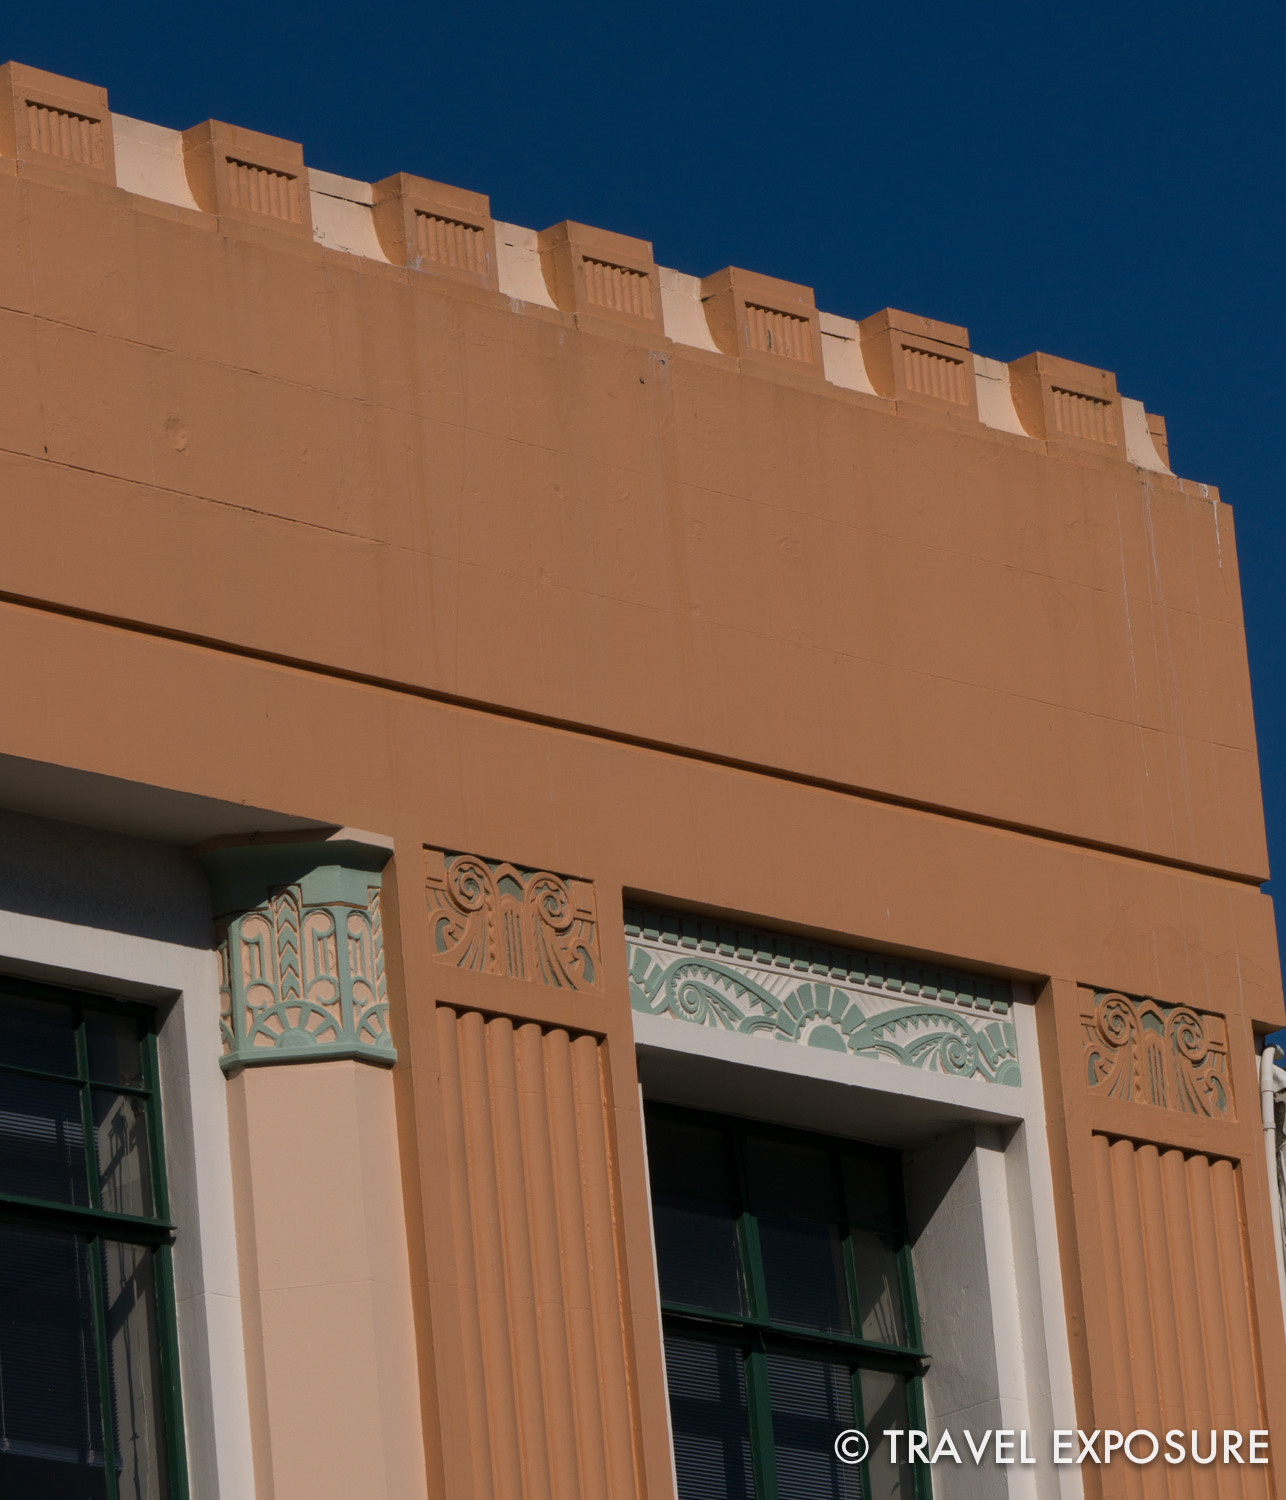 In Napier, the world's most consistently art deco city